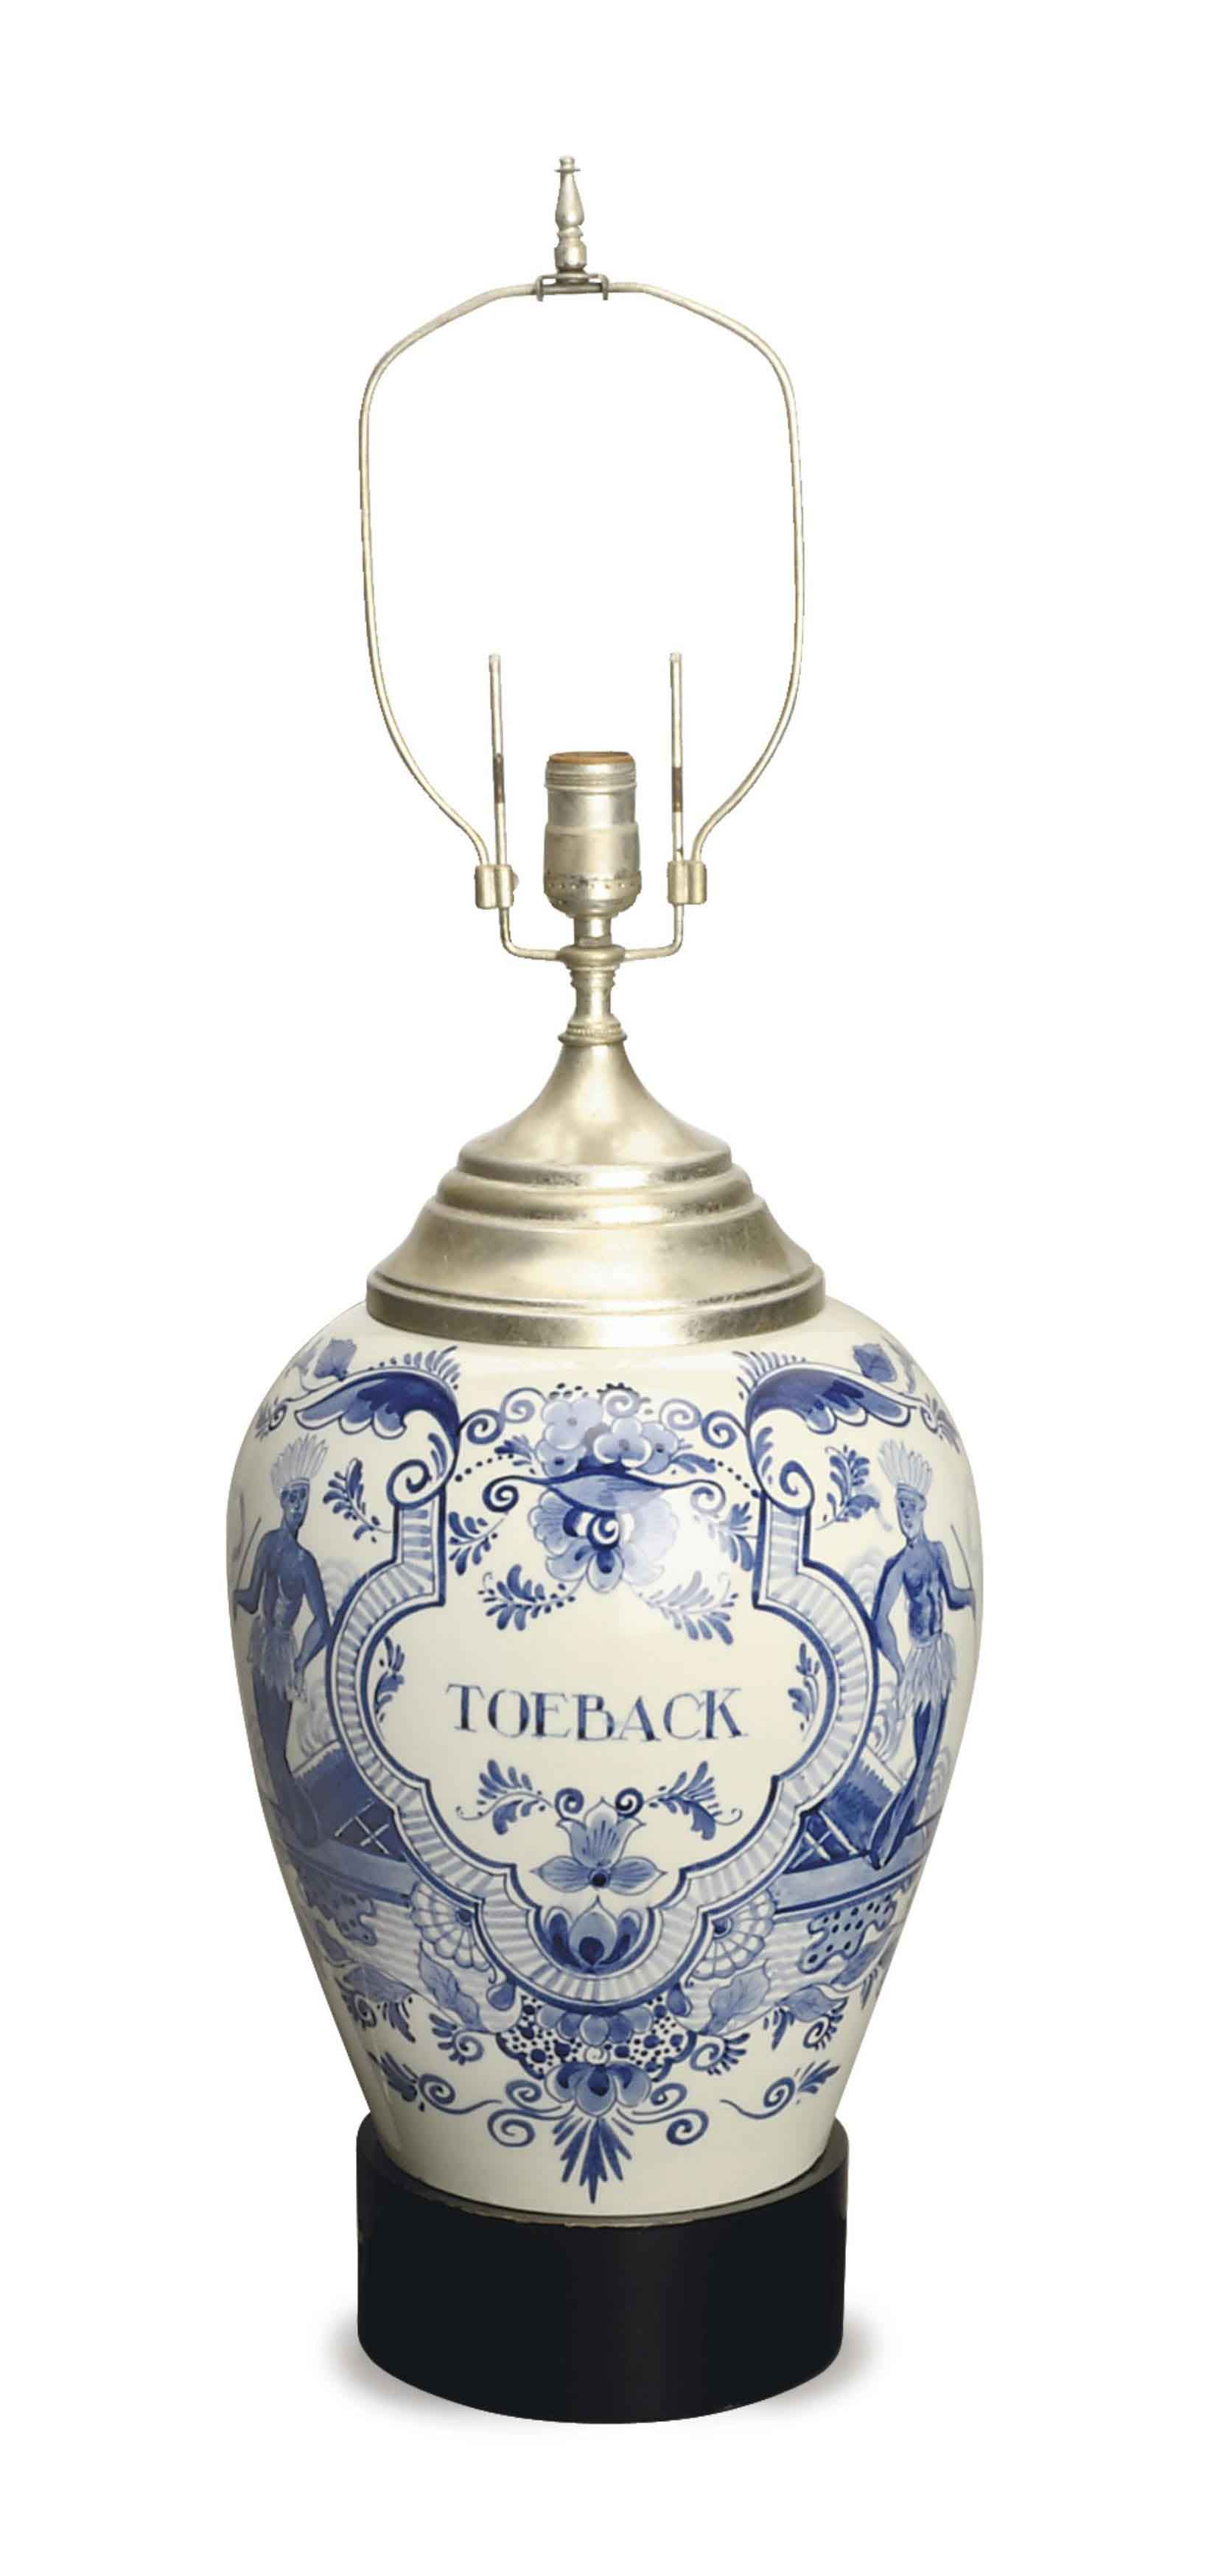 A DUTCH DELFT TOBACCO JAR MOUNTED AS A TABLE LAMP,